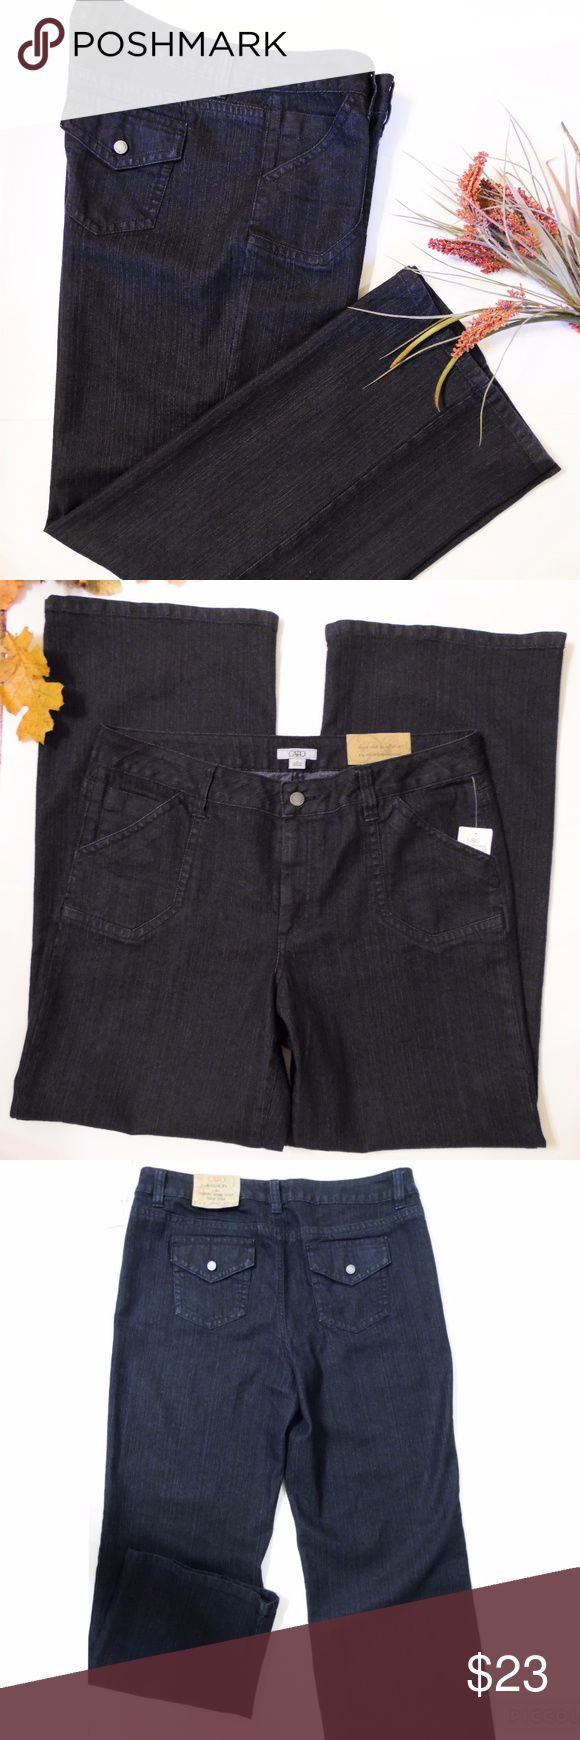 """Cato Wide Leg Trouser Jeans  Sz 14 These darling jeans are such a dark blue they almost look black, wide leg all the way down, button flap back pockets. The inseam at 33"""" is great for tall ladies or for wearing heels. NWT never worn. (Too big for mannequin & clipped on but helps show the jean's style)  Waist measures approx 19"""" flat across front Rise 11"""", back rise 16.5"""" Low hip 23"""" Inseam 33"""" Leg opening flat across front 11.5"""" (leg width stays approx 11"""" to 12""""  entire length of leg) Cato…"""